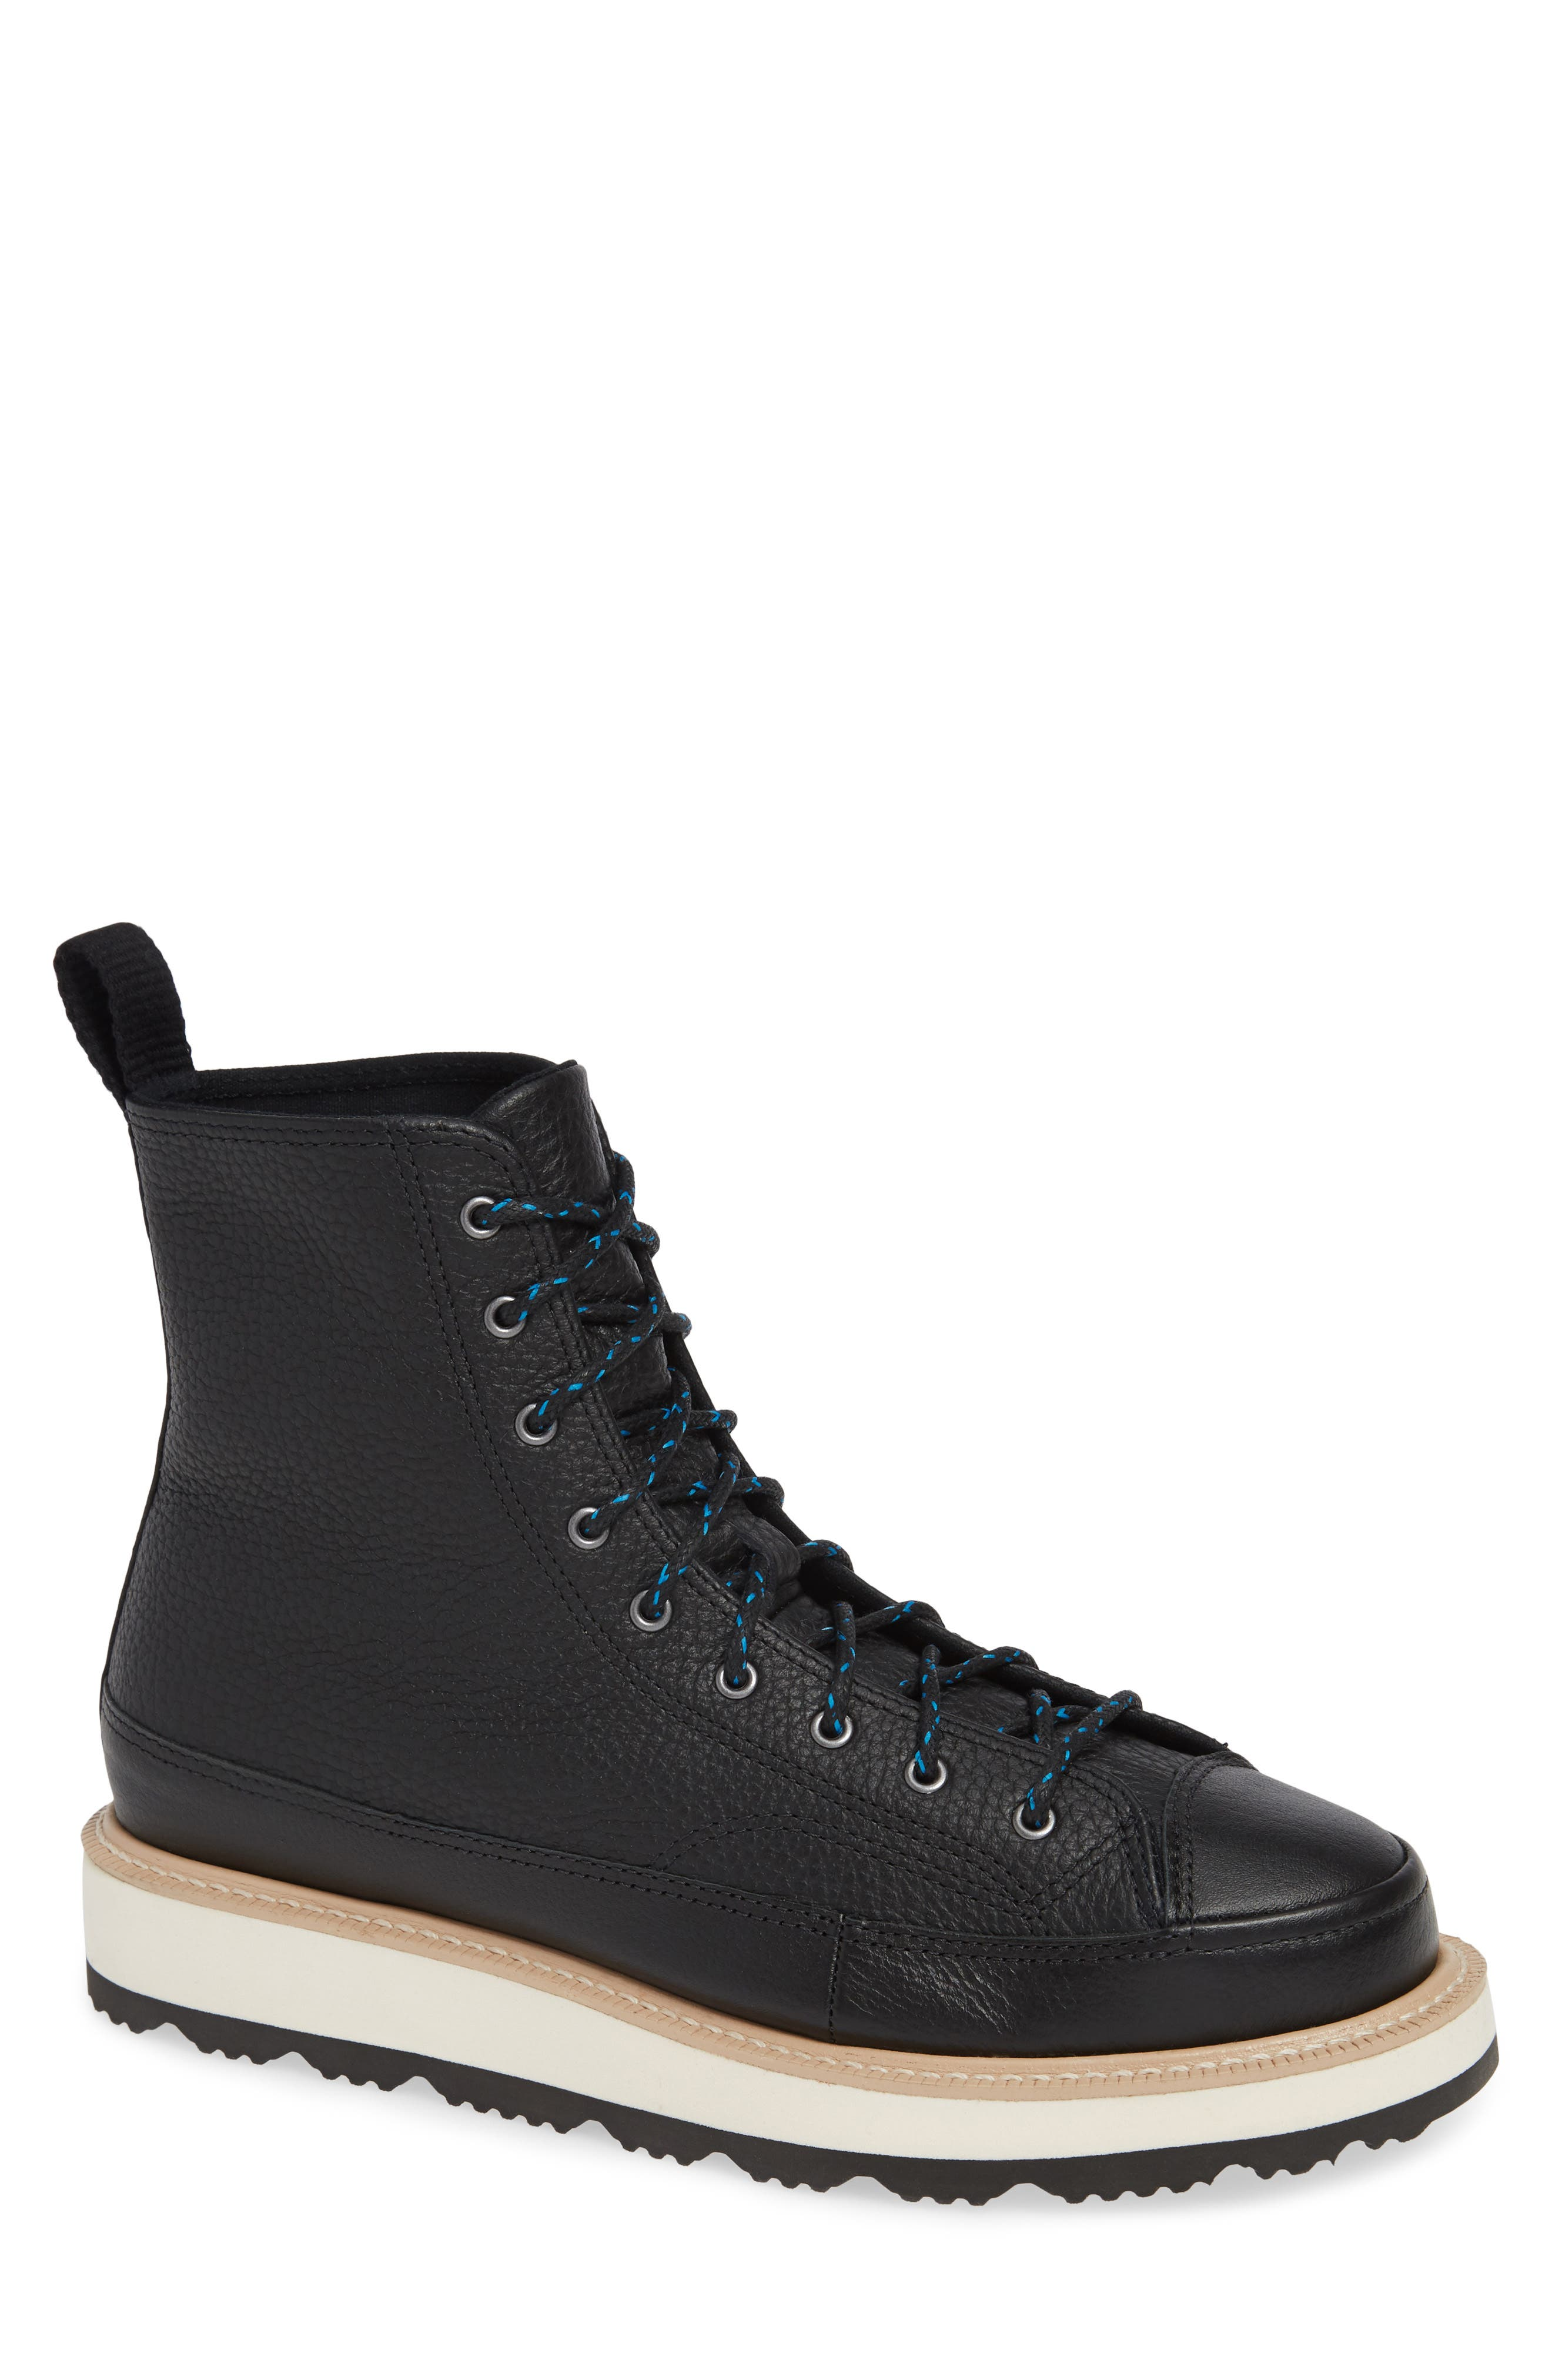 Chuck Taylor<sup>®</sup> Crafted Boot,                             Main thumbnail 1, color,                             BLACK/ LIGHT FAWN/ BLACK